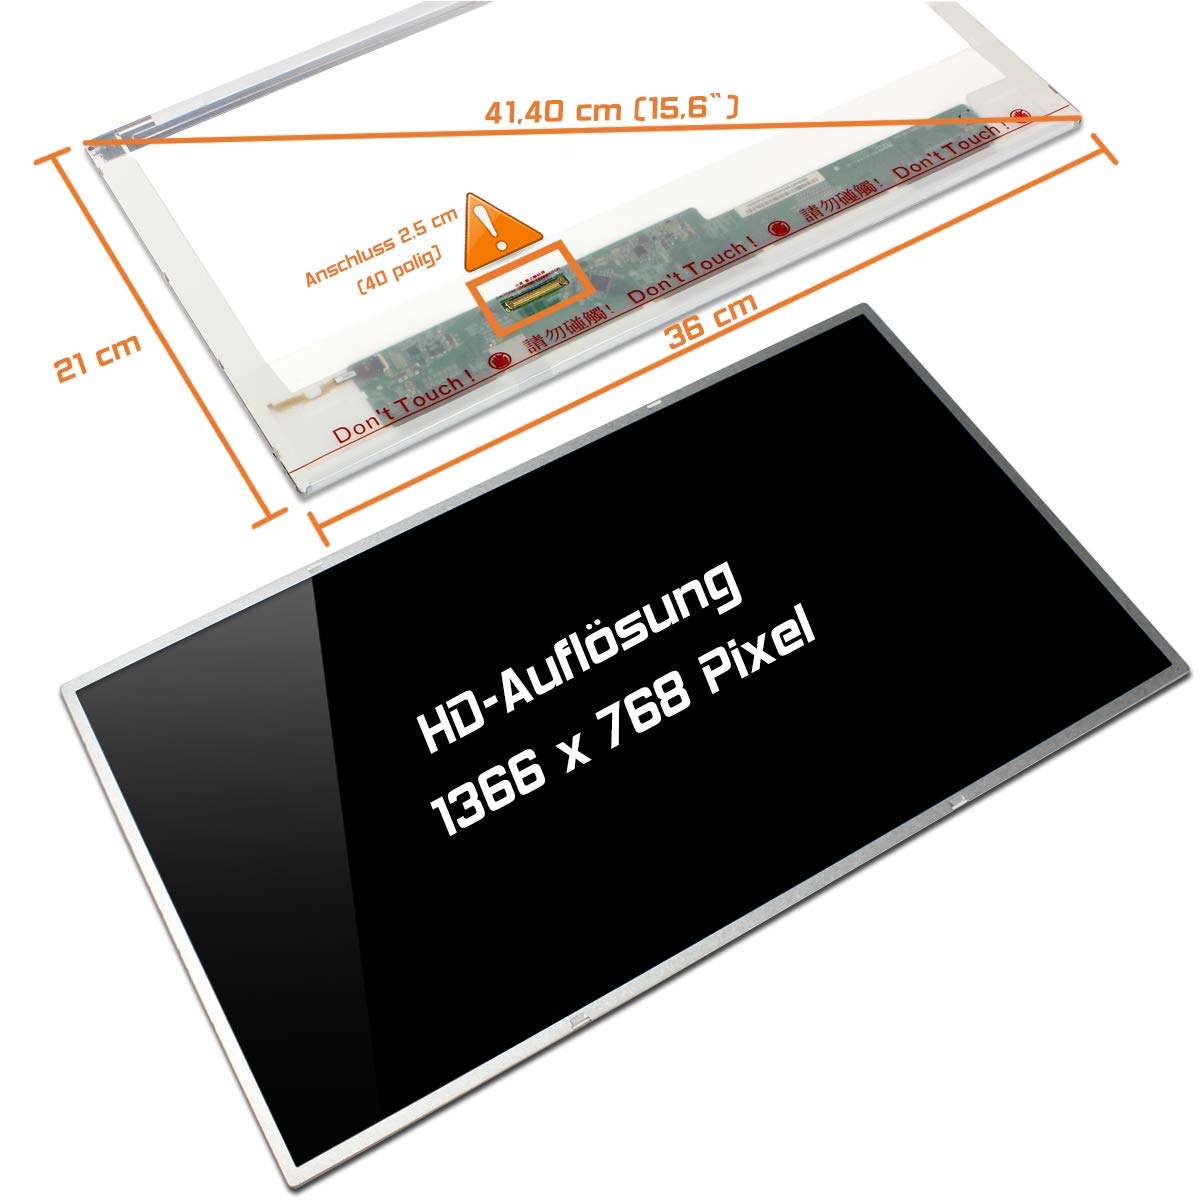 LP156WH4 (TL)(A1) & (C1) LG NEW 15.6' HD LED LCD Laptop Screen/Display -TLA1, -TLC1 (or compatible model) LG PHILIPS LED-1366-768-G-40-15.6-38